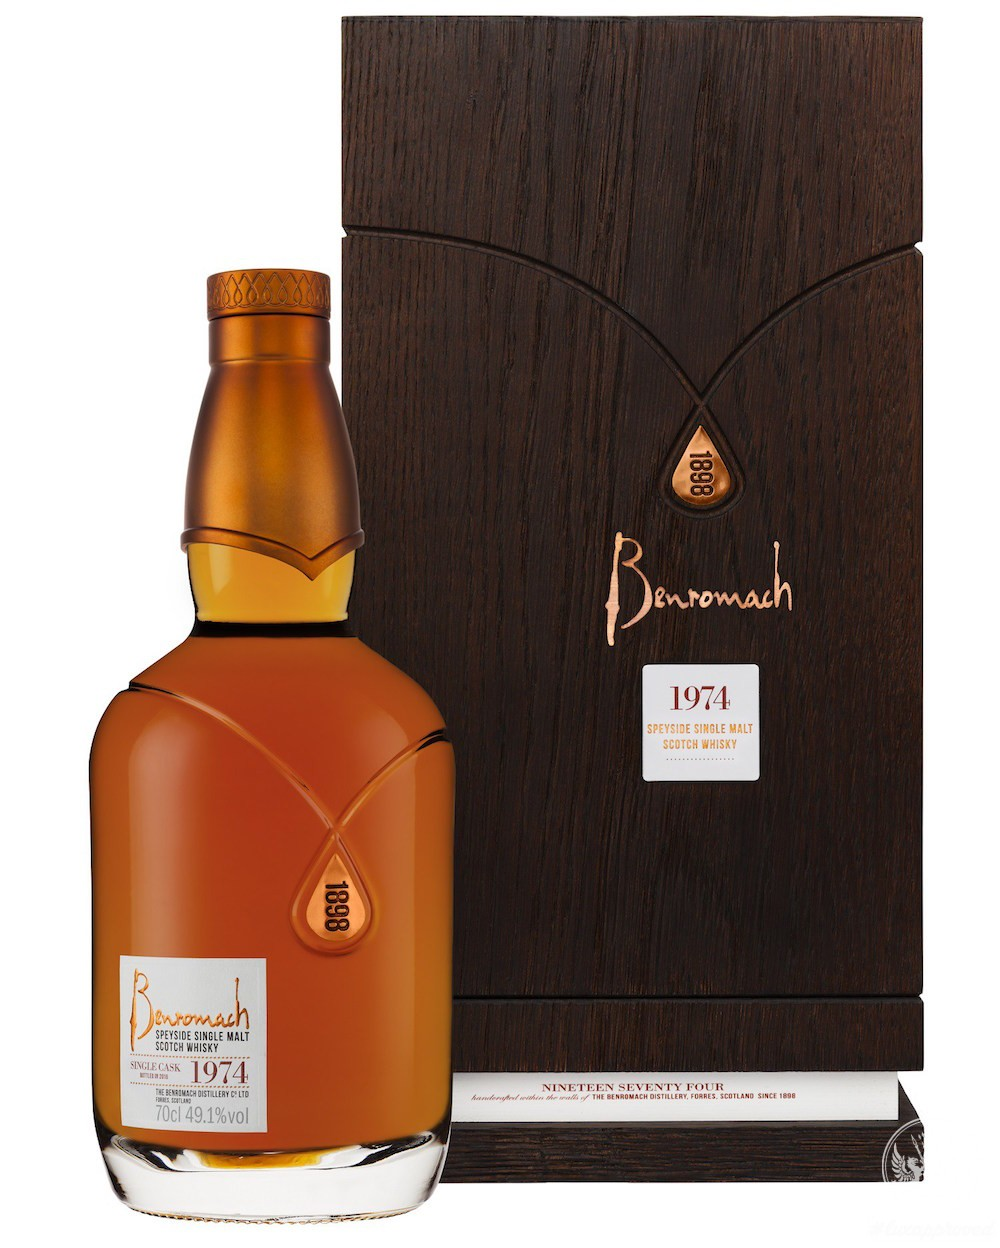 The $2,200 Benromach 1974 Single Cask